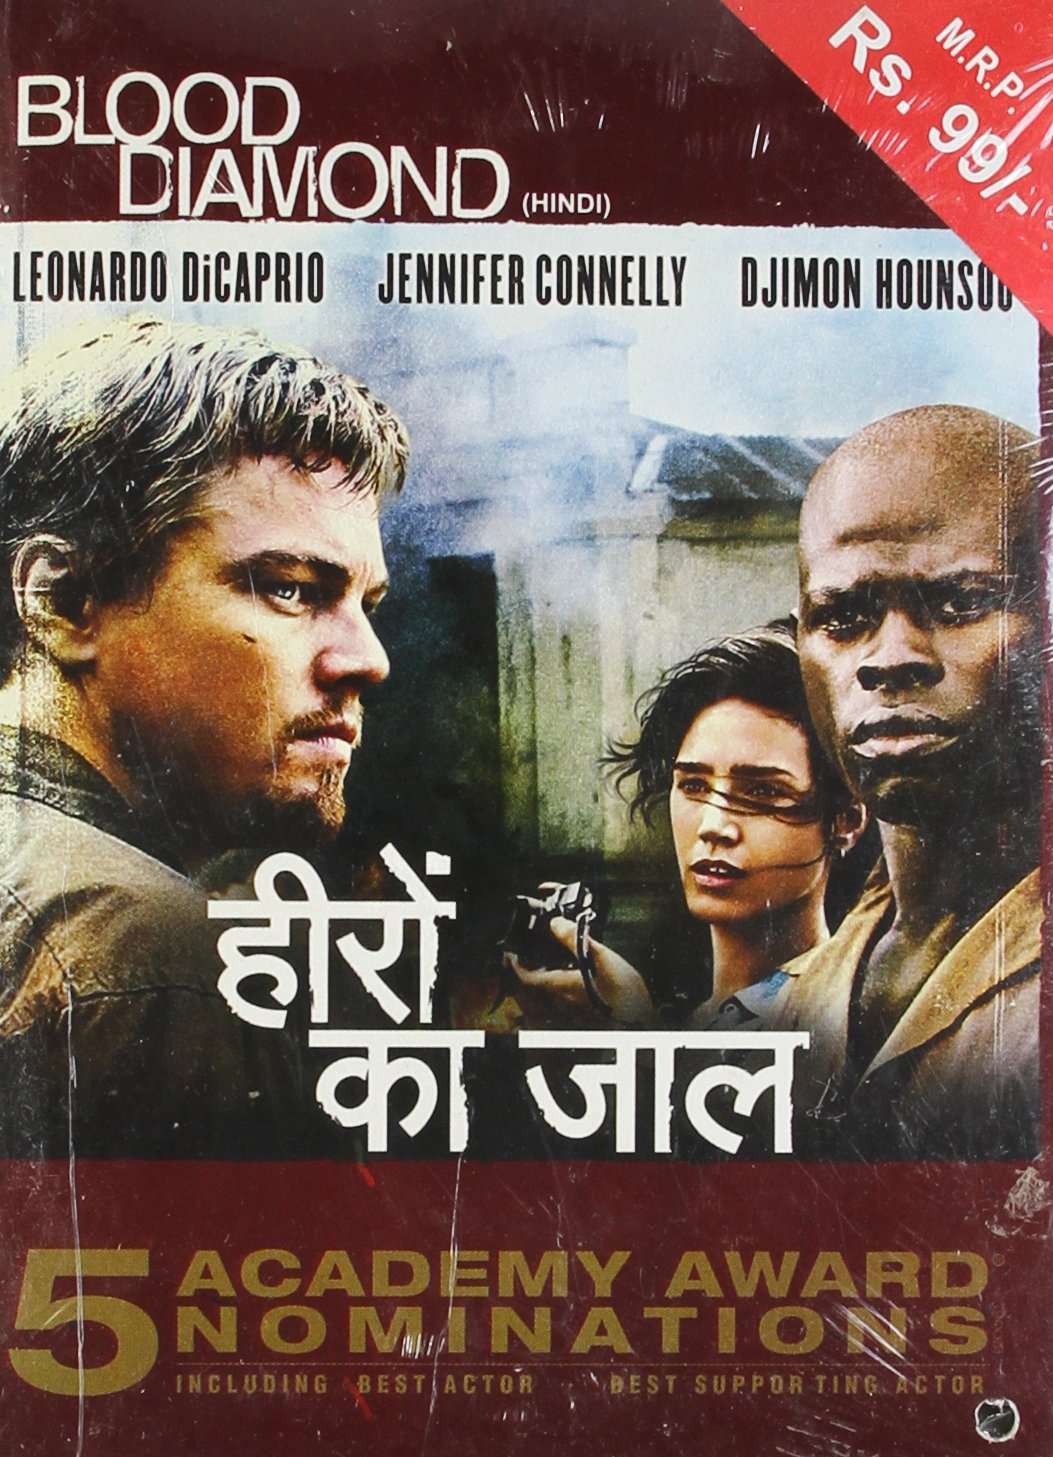 Amazonin Buy Blood Diamond Hindi DVD Blu Ray Online At Best Prices In India